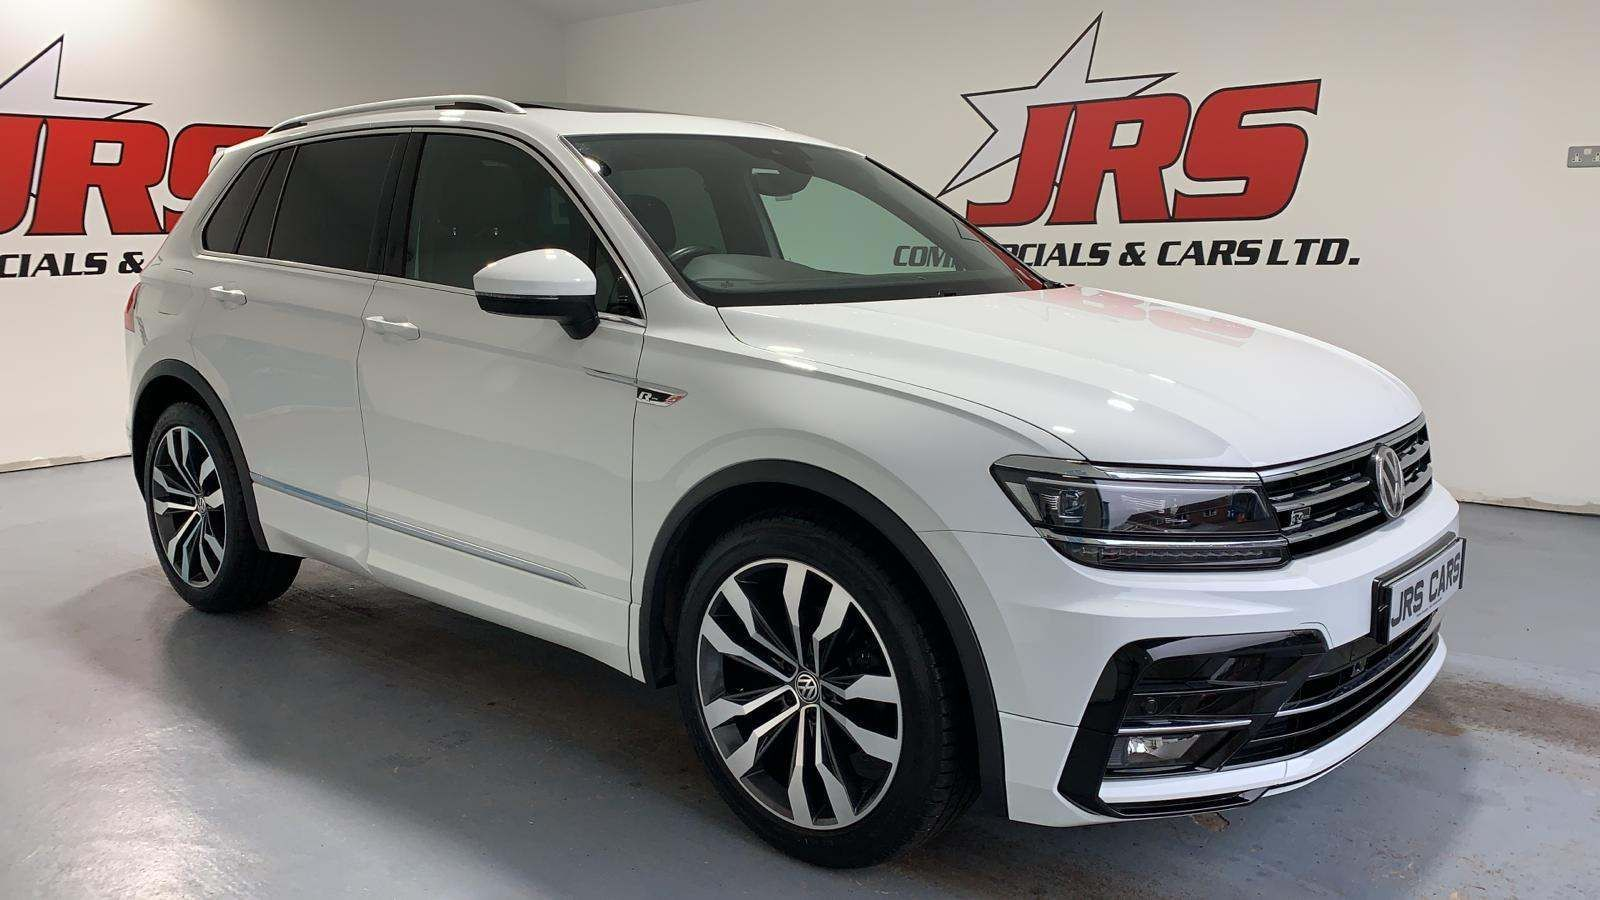 2017 VOLKSWAGEN Tiguan 2.0 TDI R-Line DSG 4Motion (s/s) Diesel Automatic Face Lift – Pan Roof – 150Bhp – J R S Commercials And Cars Dungannon